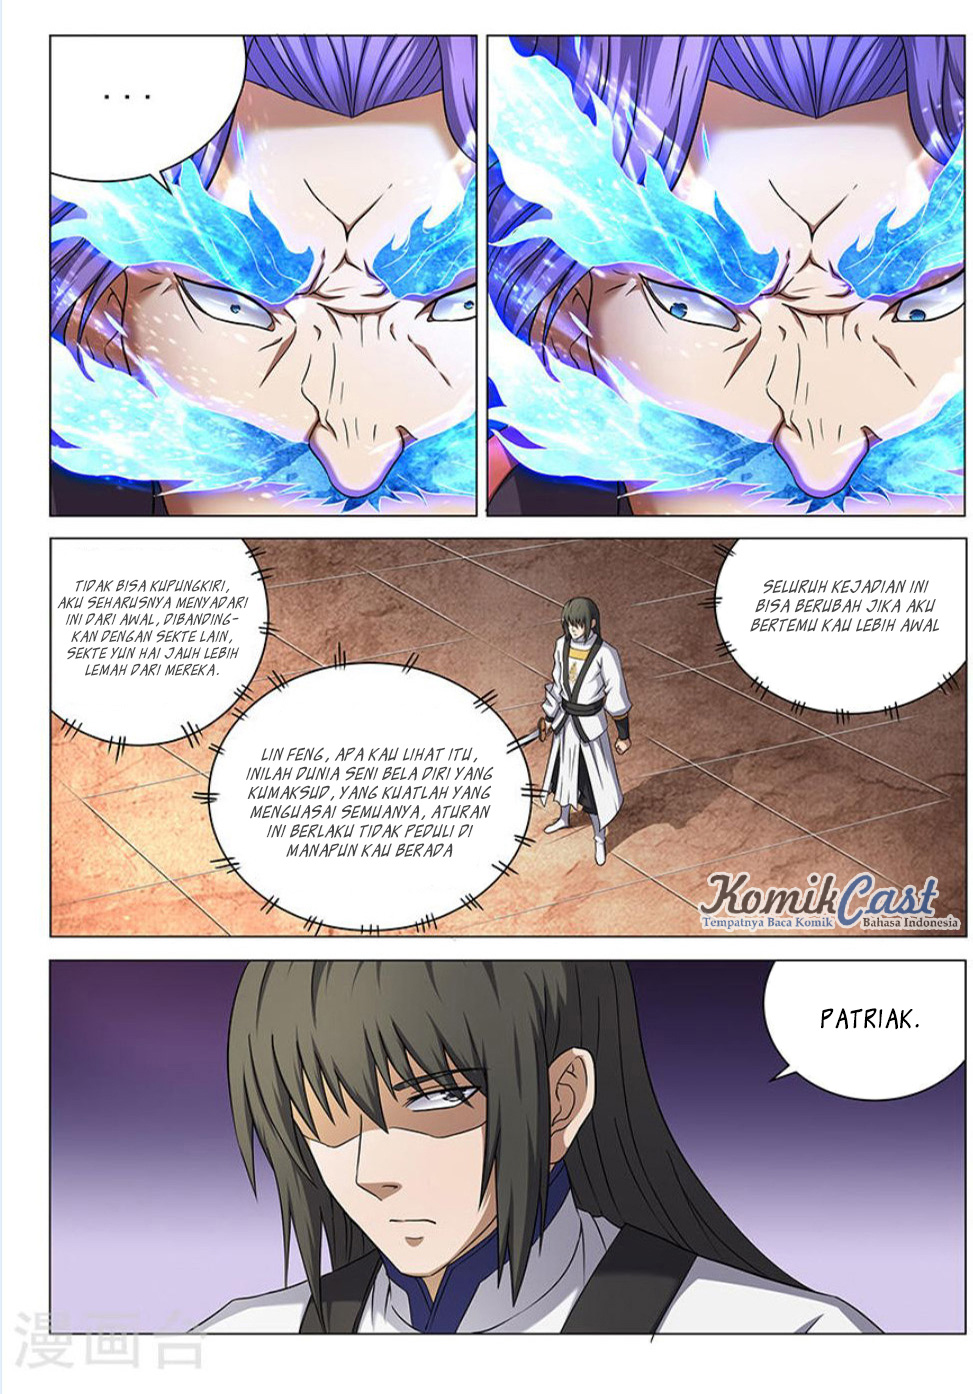 Baca Komik Manga God of Martial Arts Chapter 42.3 Komik Station